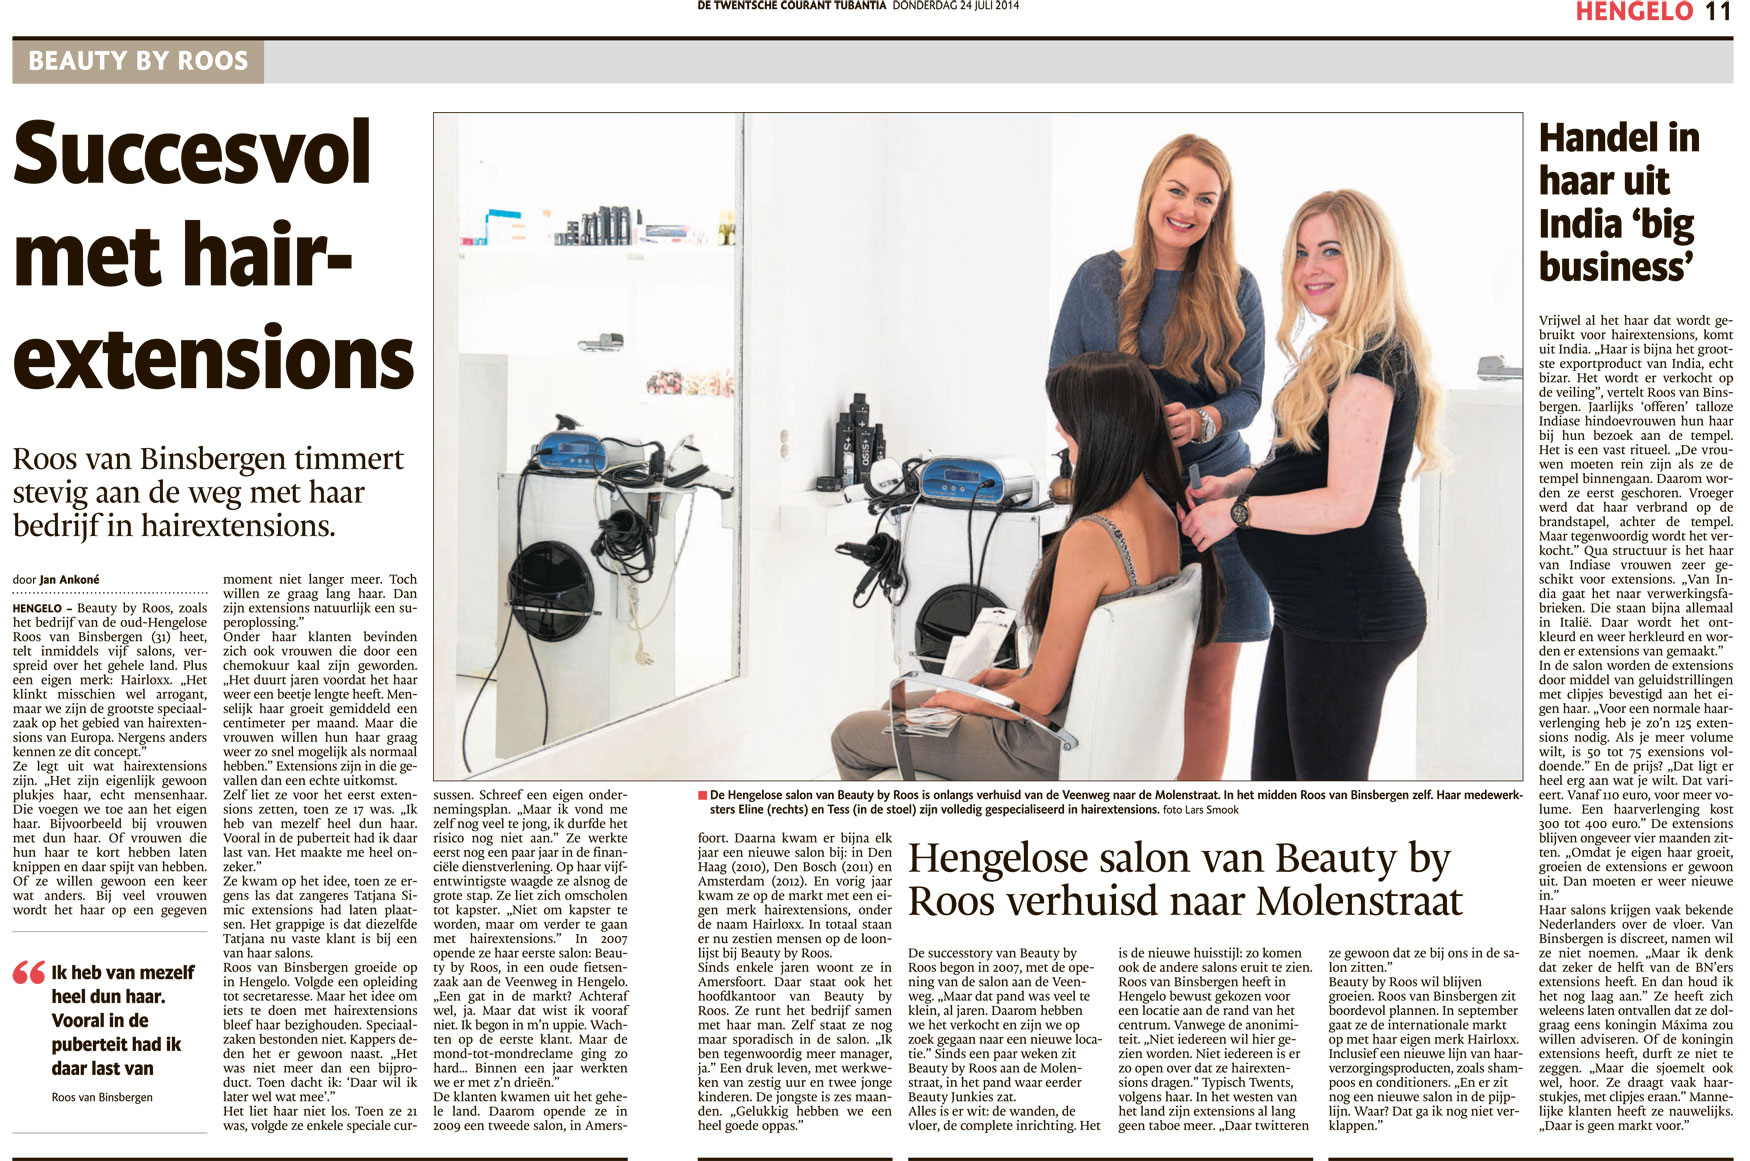 Succesvol TCT artikel over Beauty by Roos